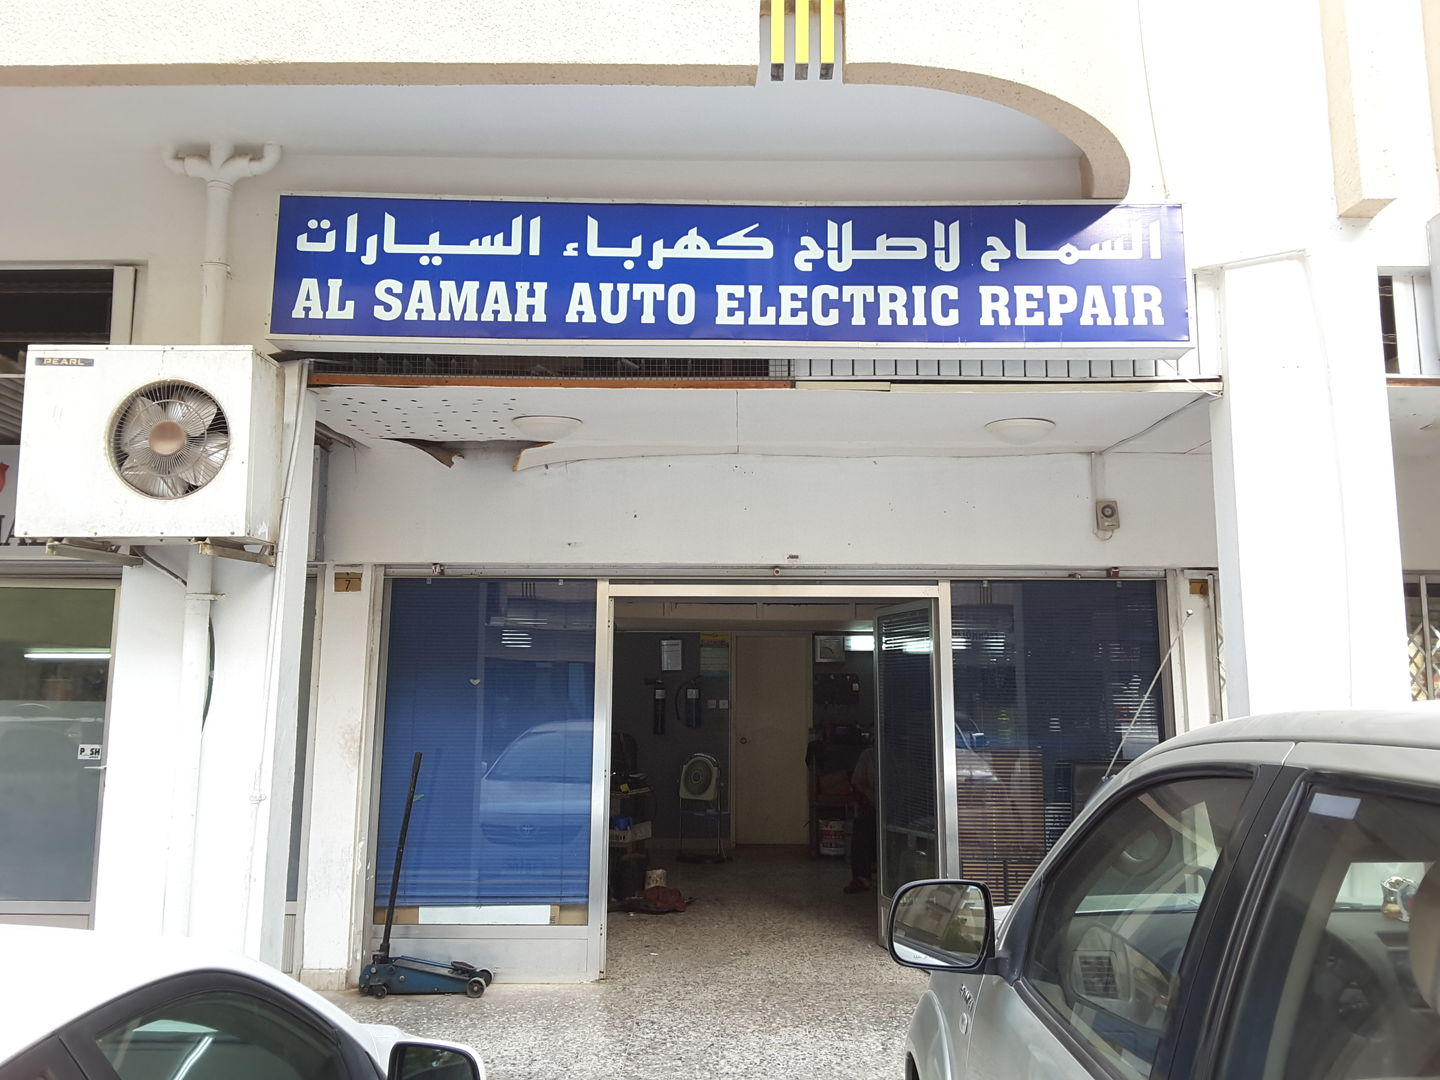 HiDubai-business-al-samah-auto-electric-repair-home-handyman-maintenance-services-al-karama-dubai-2